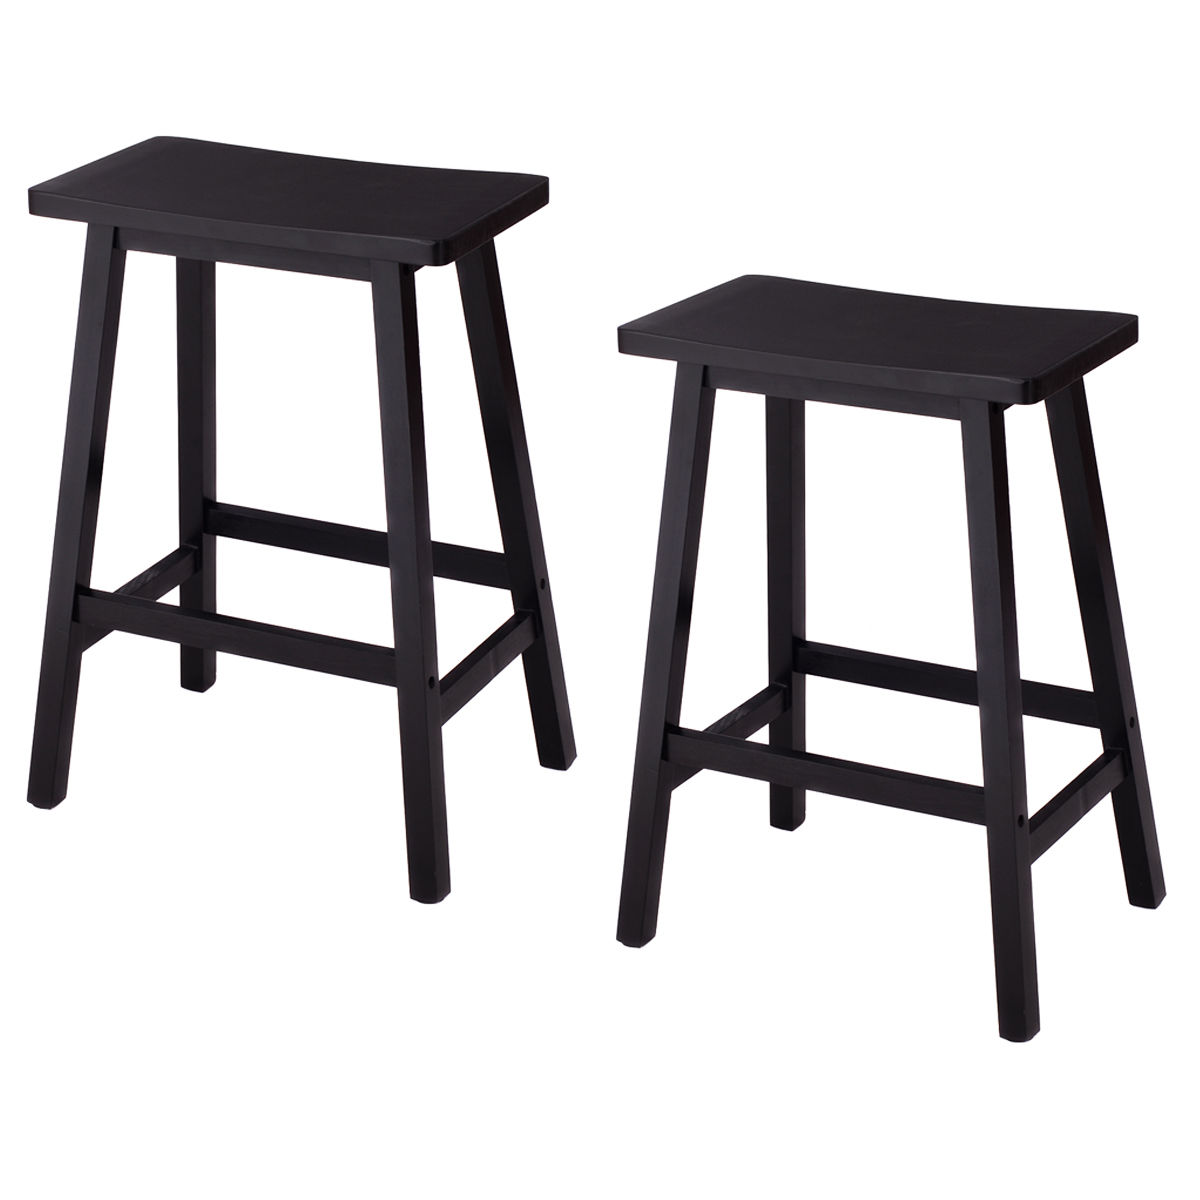 Costway Set of 2 Saddle Seat 24'' Bar Stools Wood Bistro Dining Kitchen Pub Chair Black